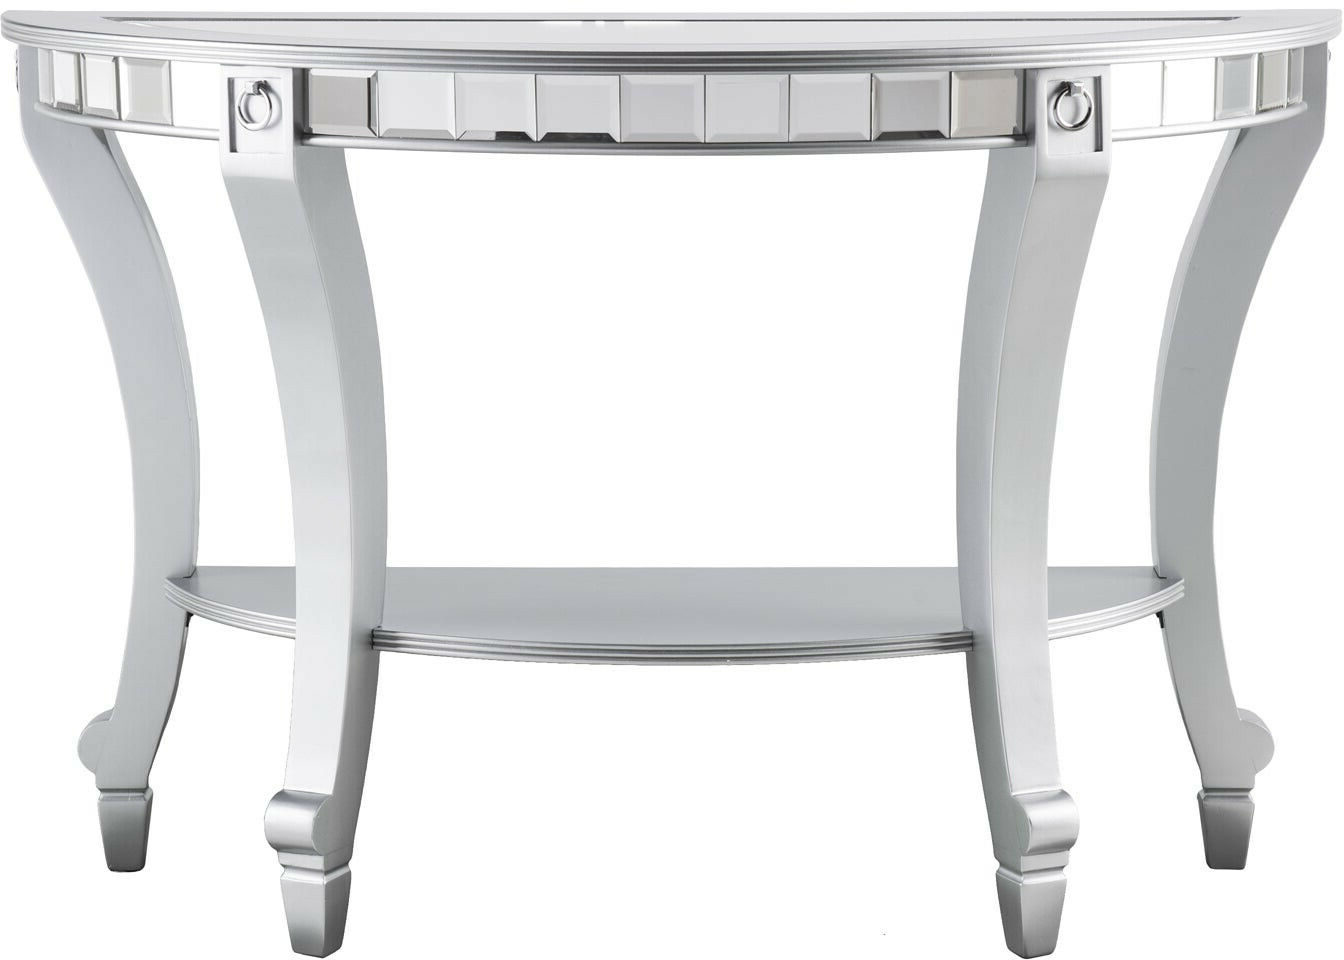 Olivia Glam Mirrored Demilune Console Table – Matte Silver Inside Trendy Silver Orchid Olivia Glam Mirrored Round Cocktail Tables (View 13 of 20)